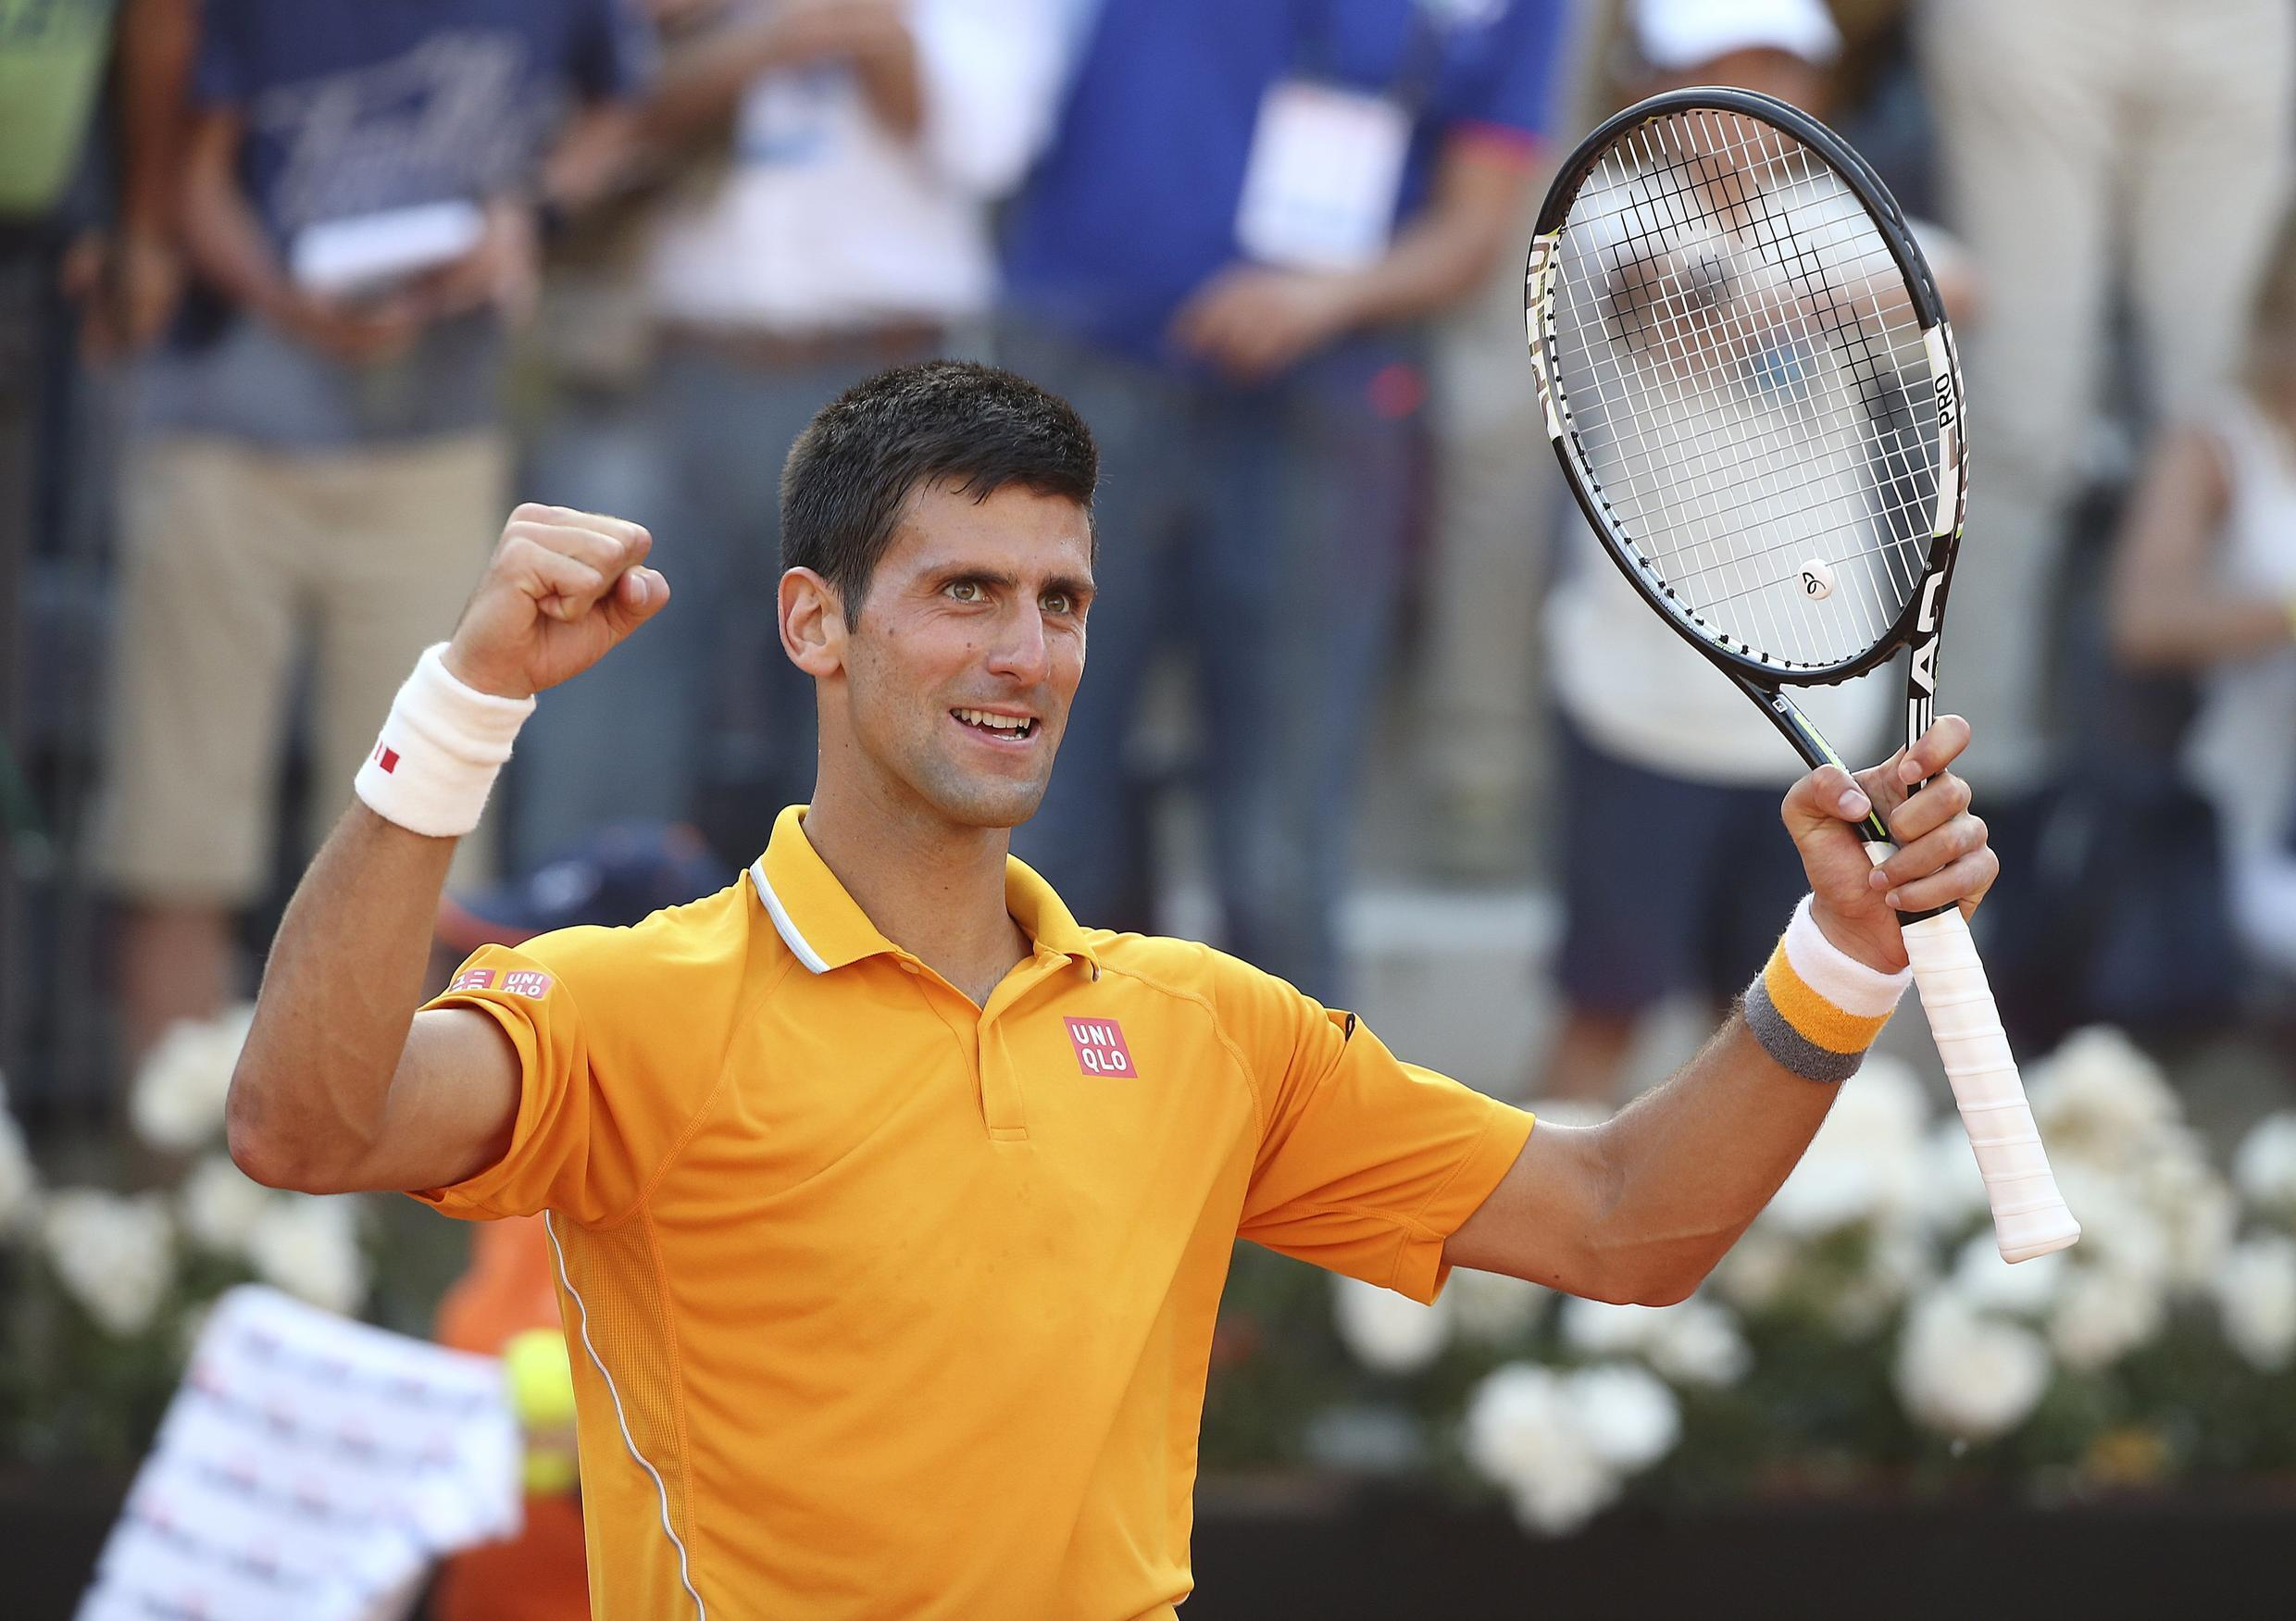 Novak Djokovic won his fourth Rome Masters title with his straights sets victory over Roger Federer